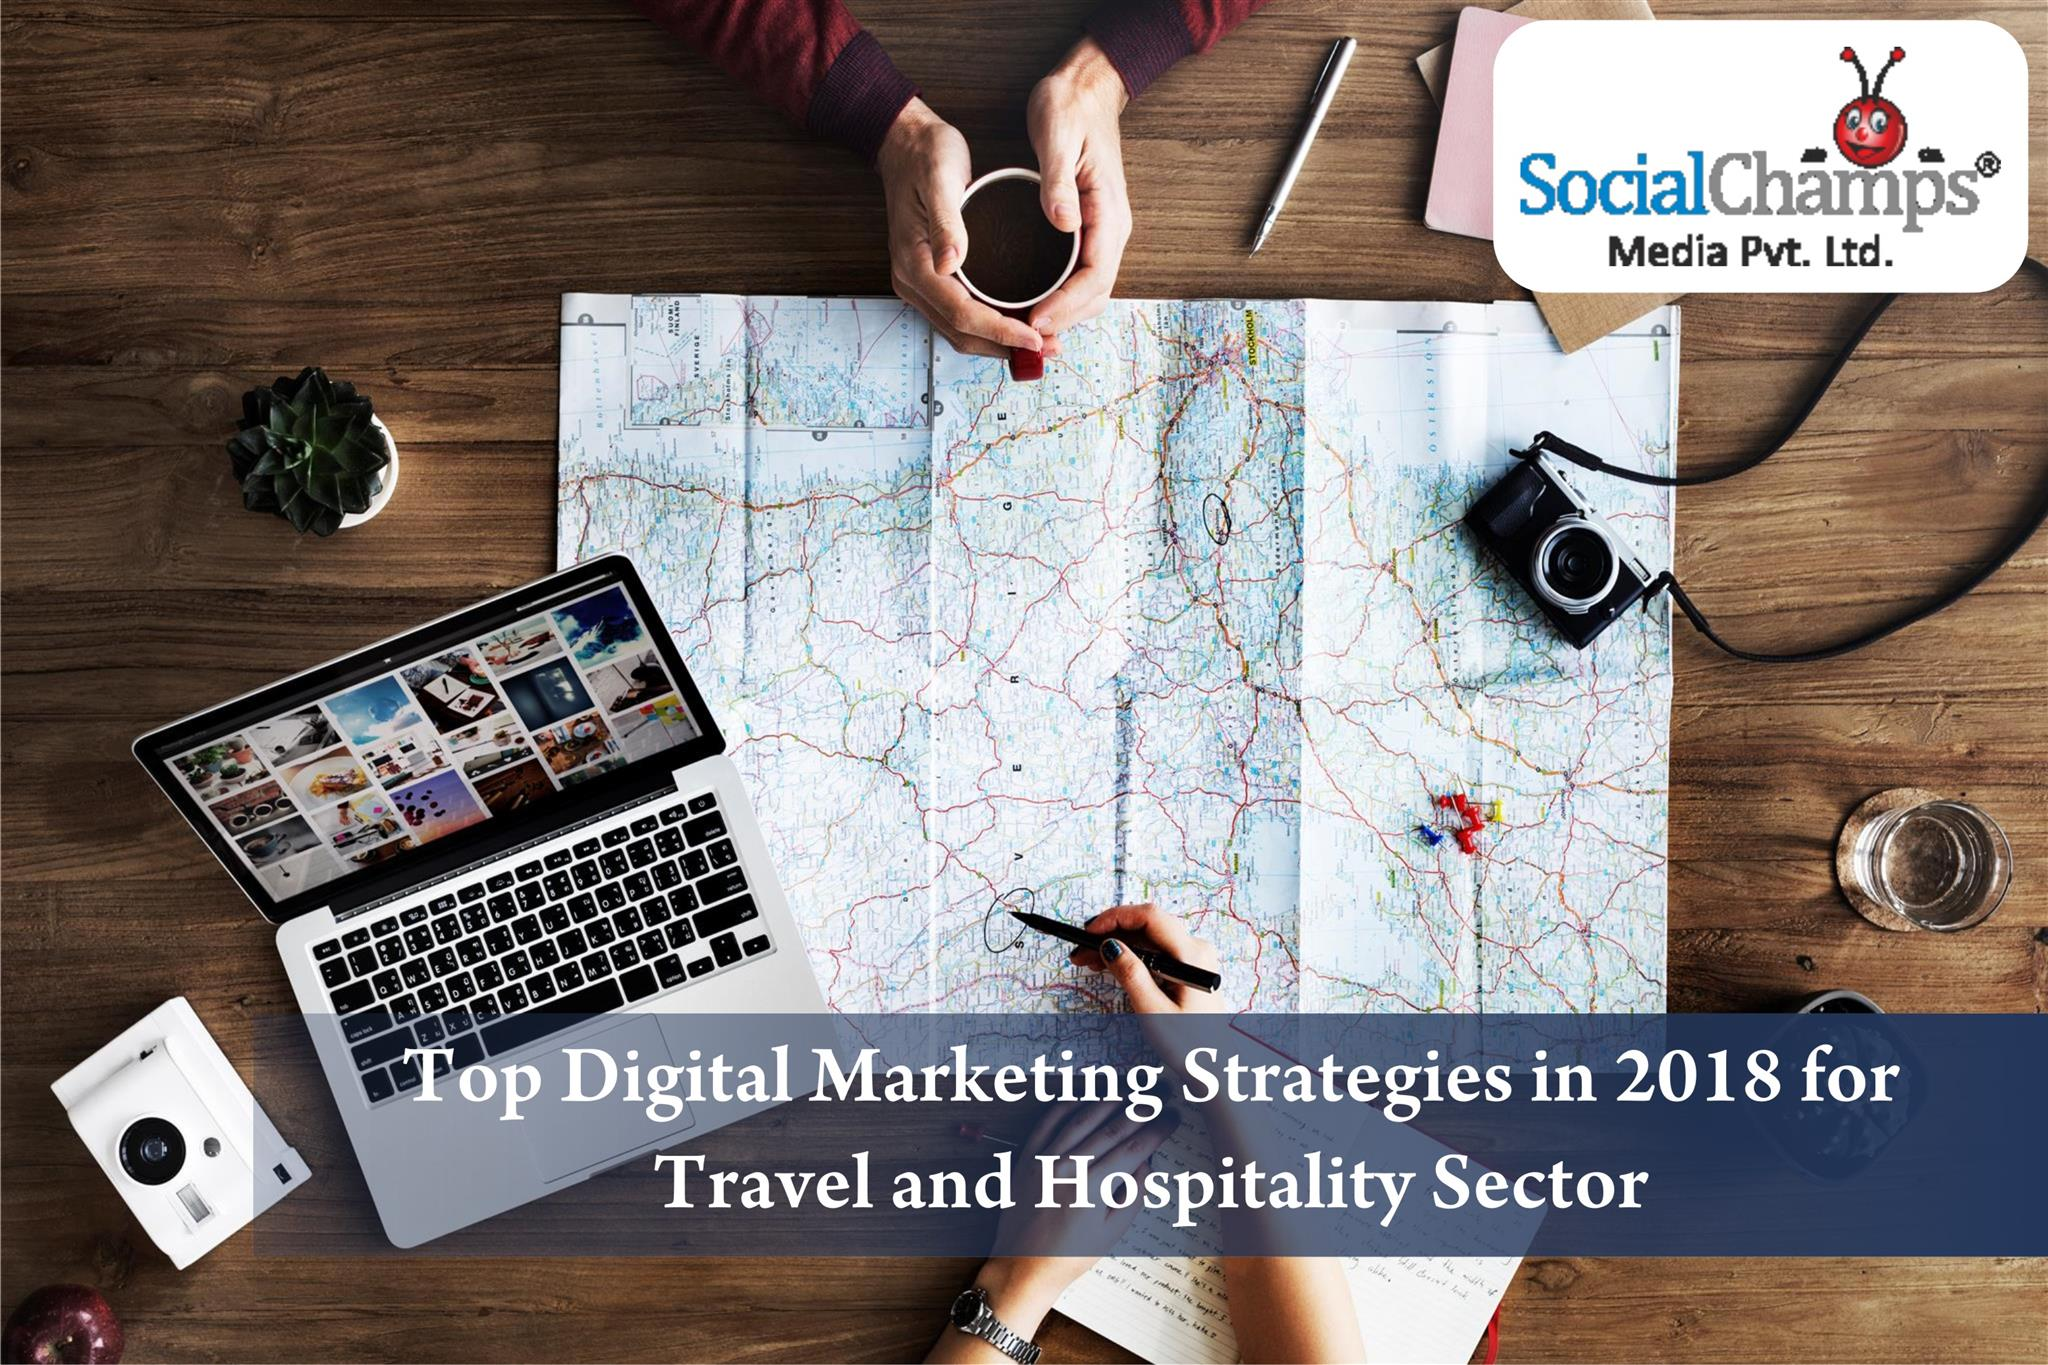 Digital marketing strategy for travel and hospitality